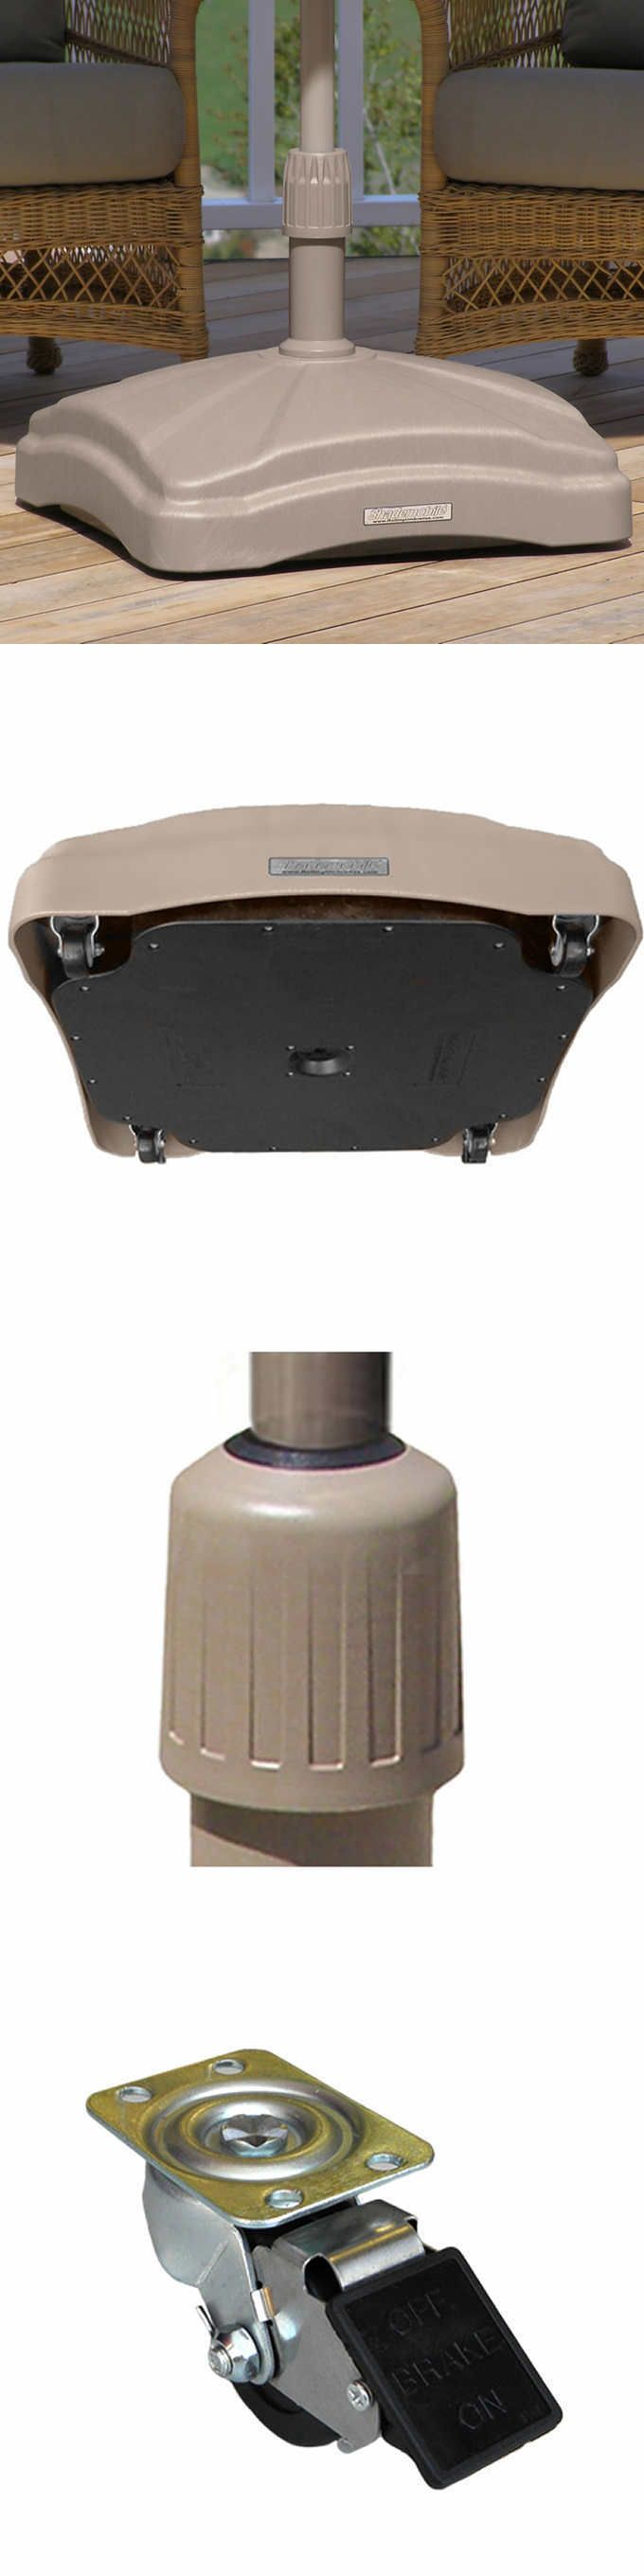 Umbrella Stands 180999: Rolling Umbrella Pole Base Home Patio Decor Turn Pivot Stand Outdoor Furniture -> BUY IT NOW ONLY: $199 on eBay!